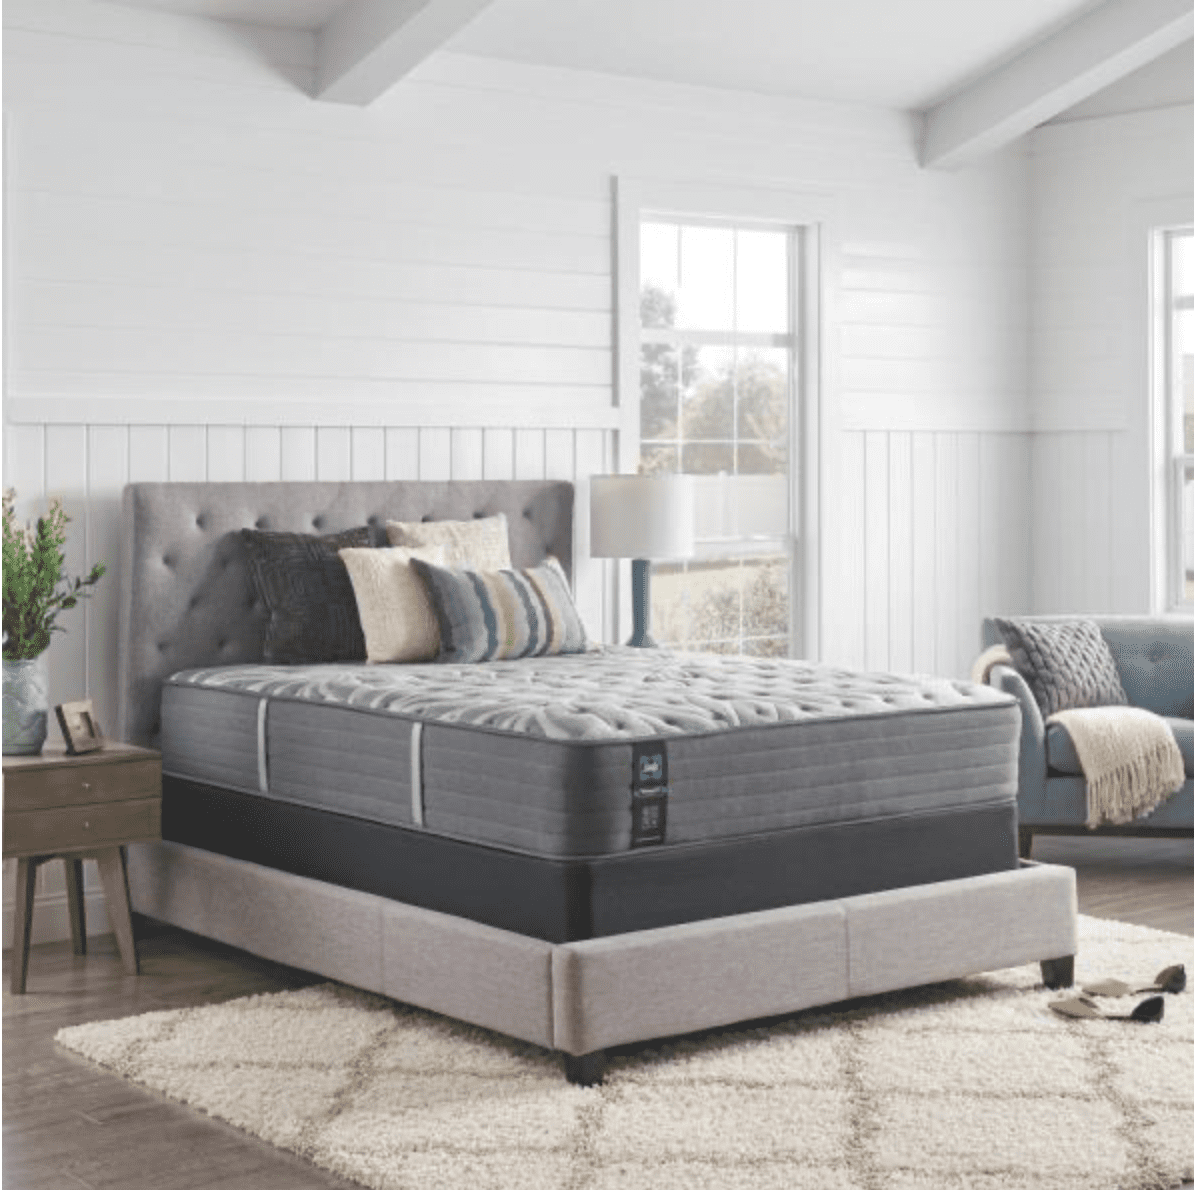 Home Depot: Select Mattresses, bedroom furniture on sale!